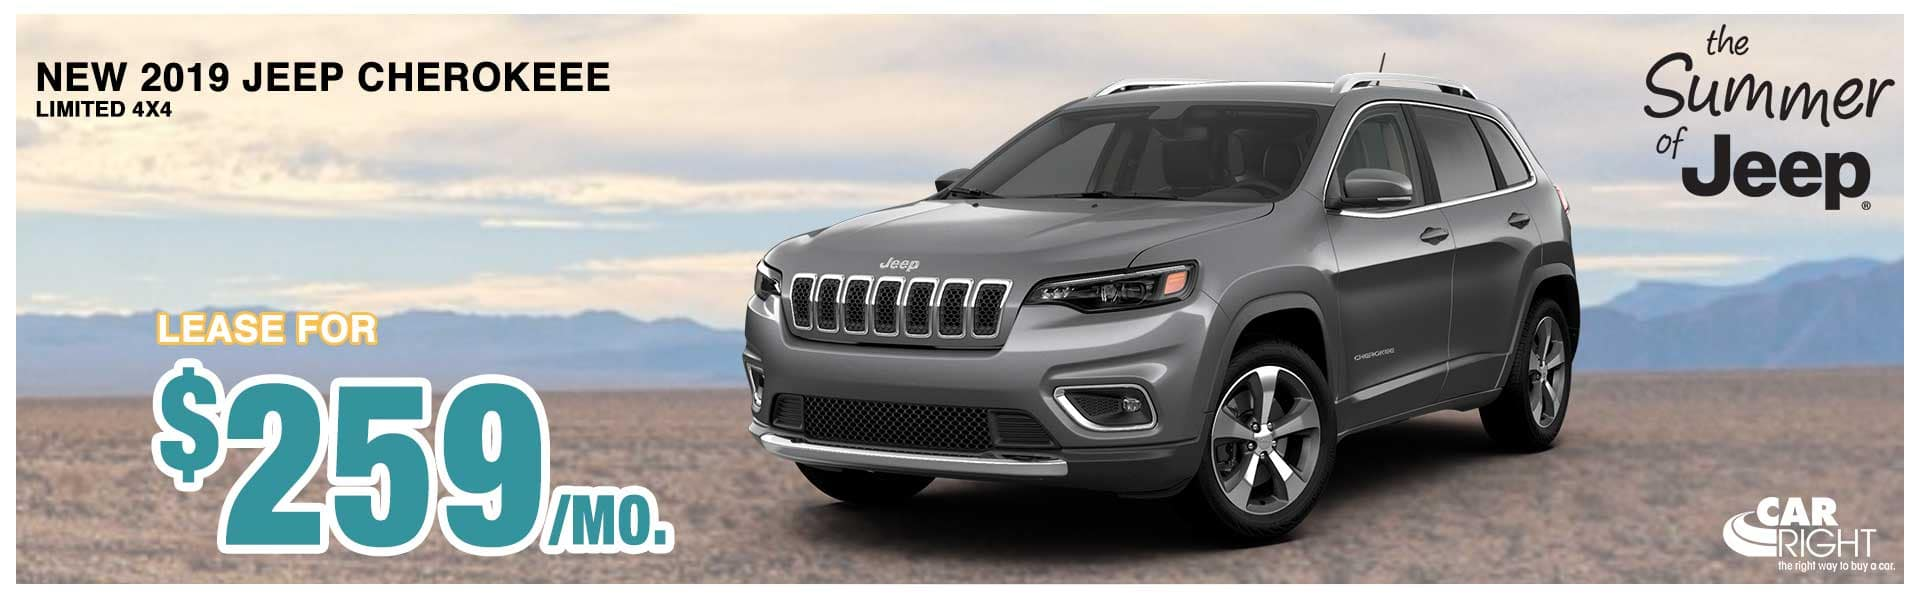 Diehl auto carright Chrysler dodge jeep ram lease special financing summer clearance event summer of jeep new vehicle special new special